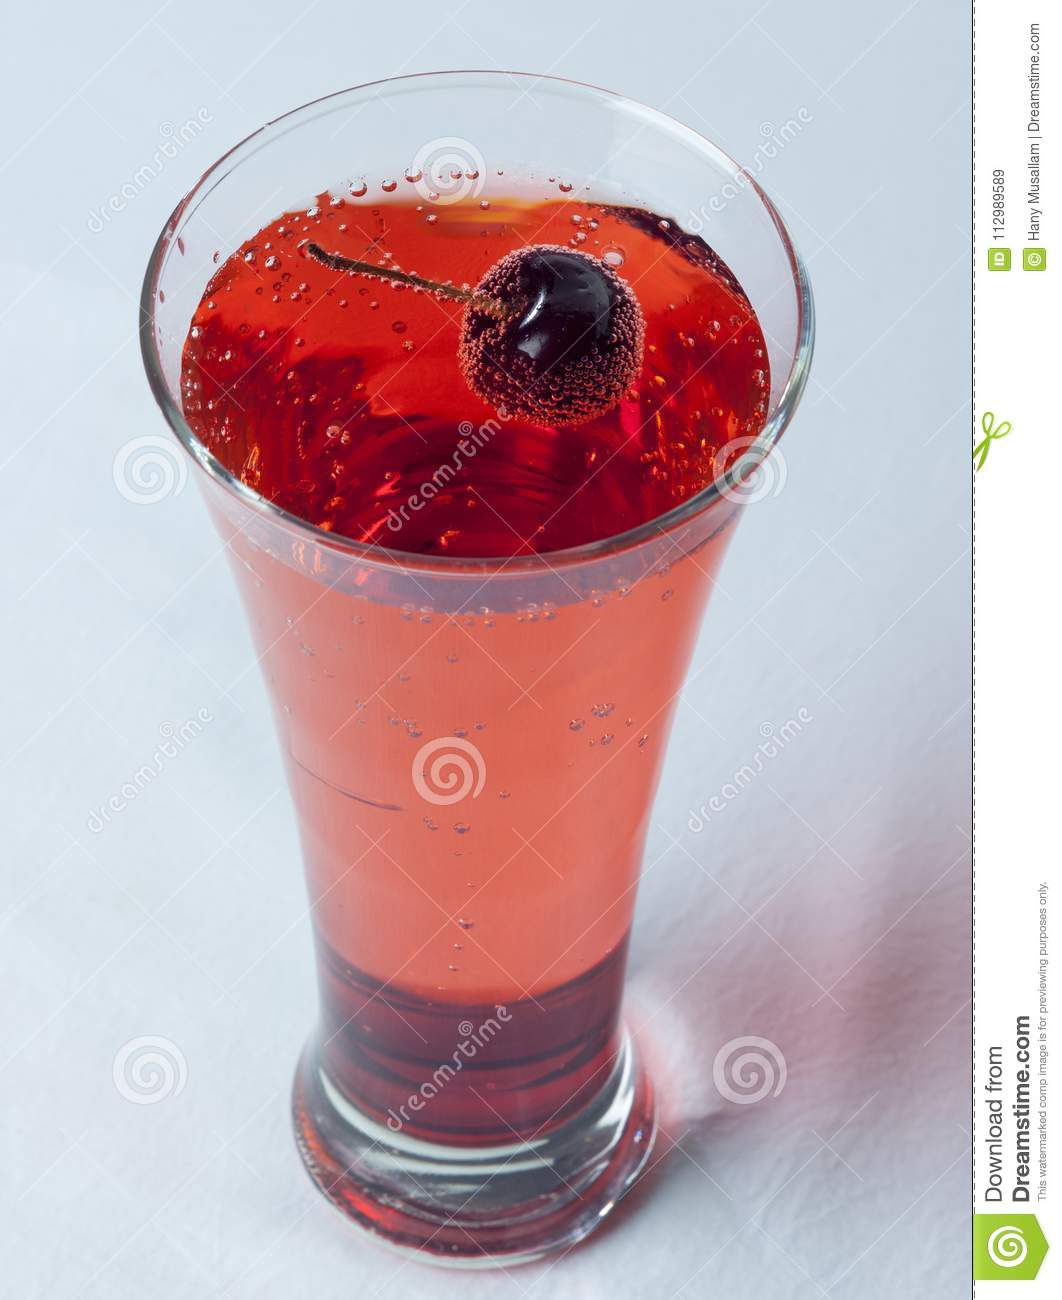 A glass of Cherry Juice close up with cherry fruit and Air Bubles